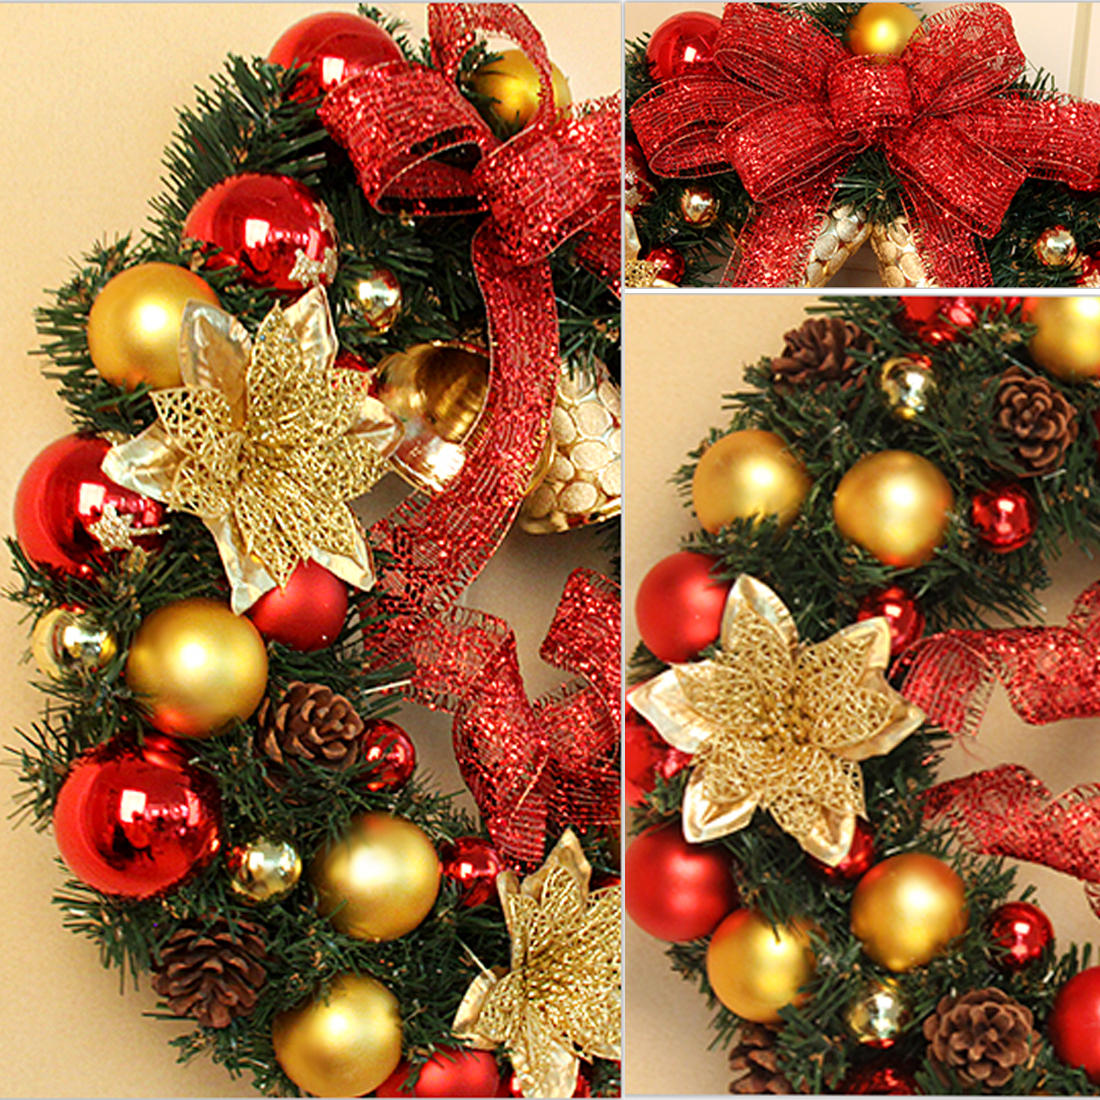 Christmas Decorations For Home Door And Window Decorations Christmas Wreath  Luxury Merry Christmas Party Ball Bell Garland In Pendant U0026 Drop Ornaments  From ...